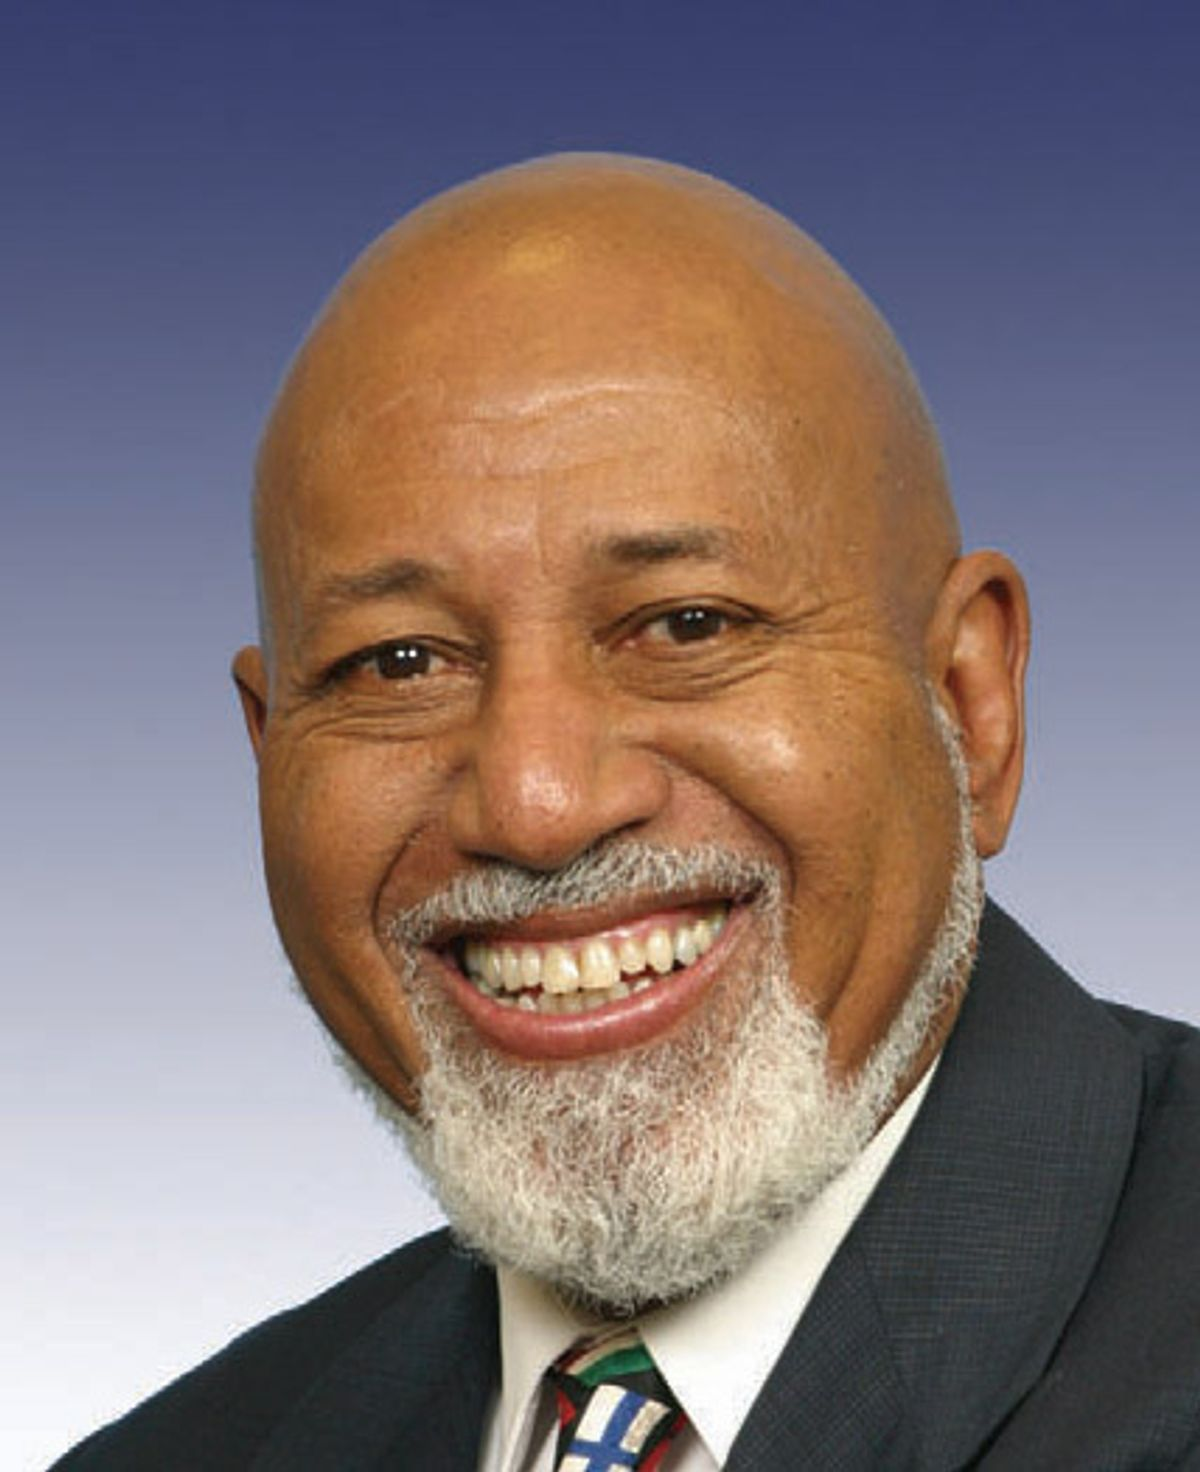 Official photograph or Representative Alcee Hastings